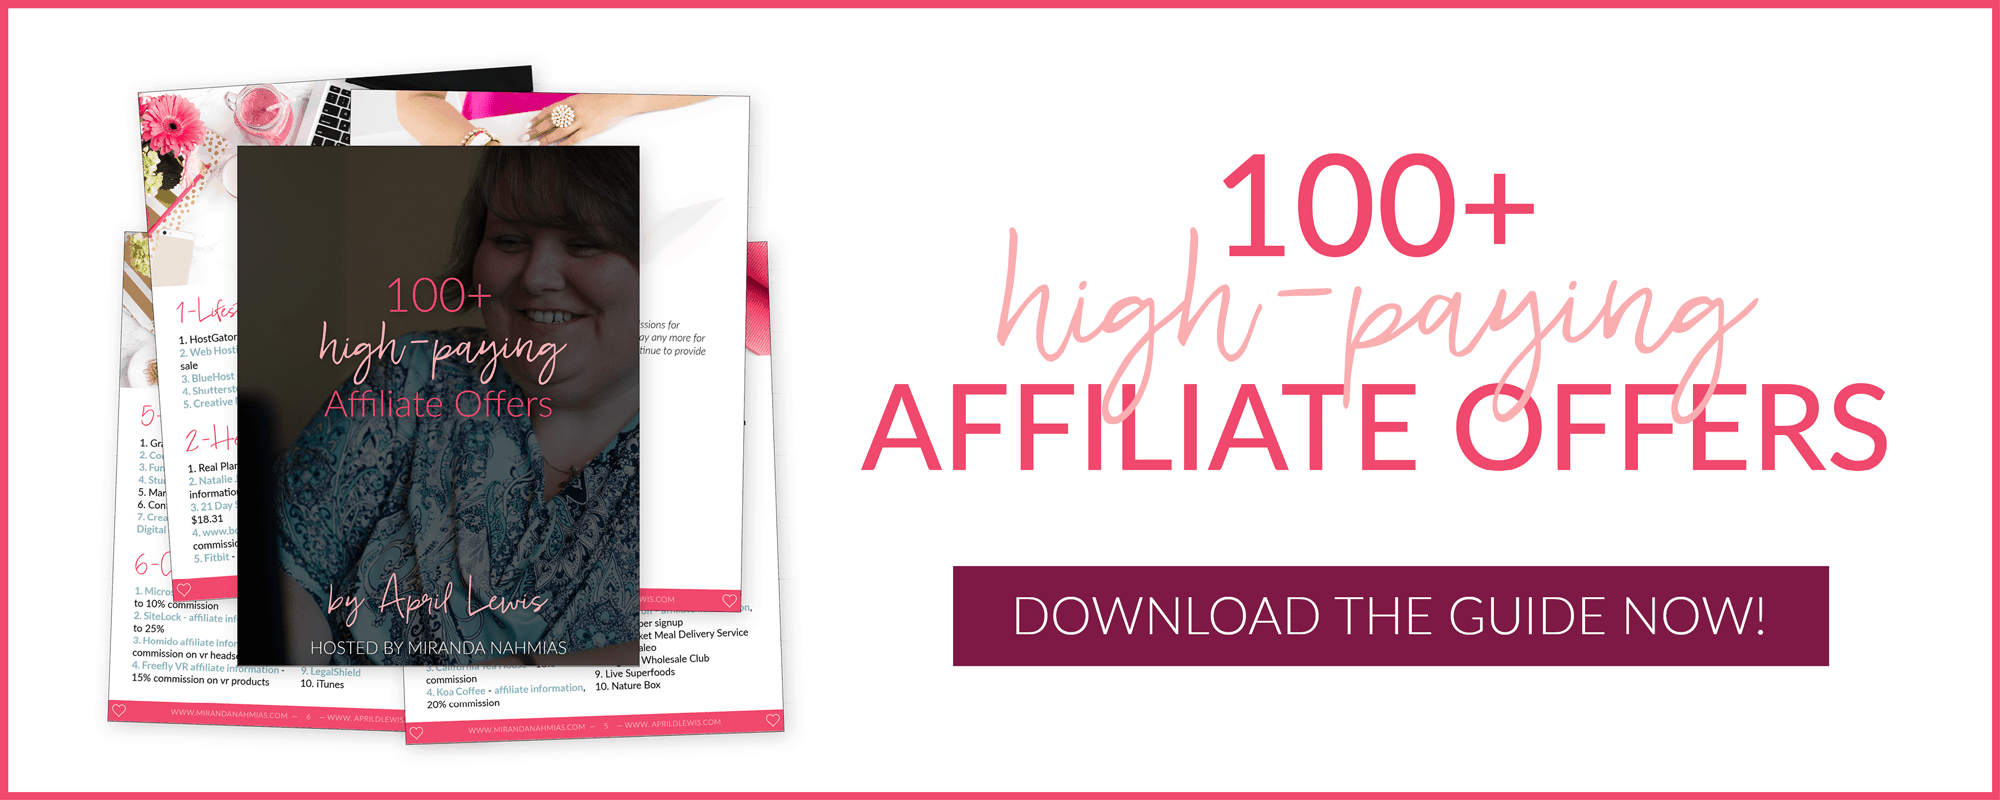 100-high-paying-affiliate-offers-freebie-april-lewis